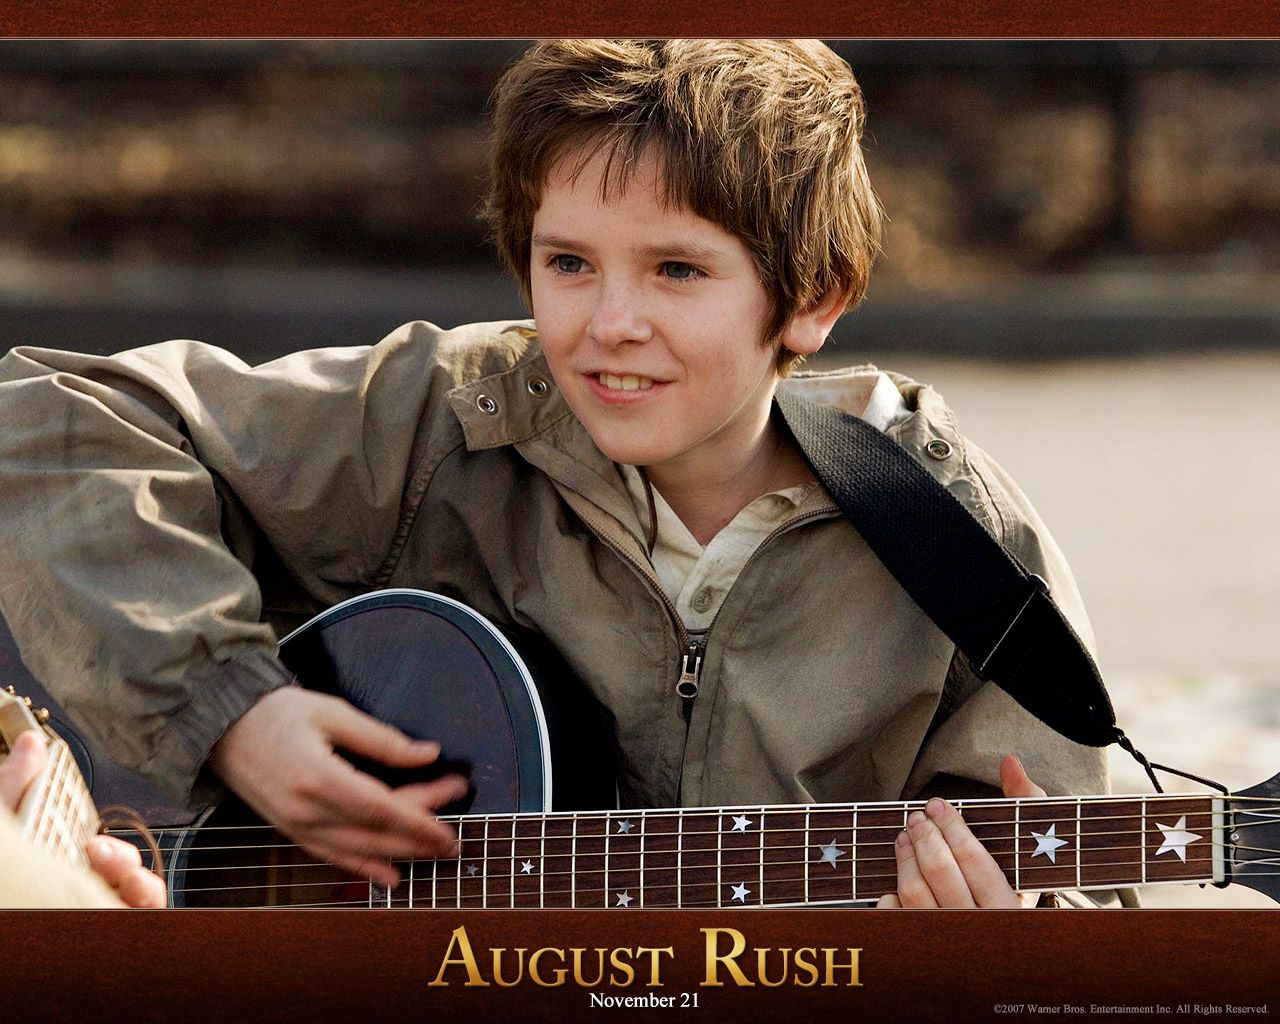 reaction about the movie august rush Hello again guys, here you will post your reaction to the movie august rush how does this movie relate to our unit did you enjoy it why what did you like the most.